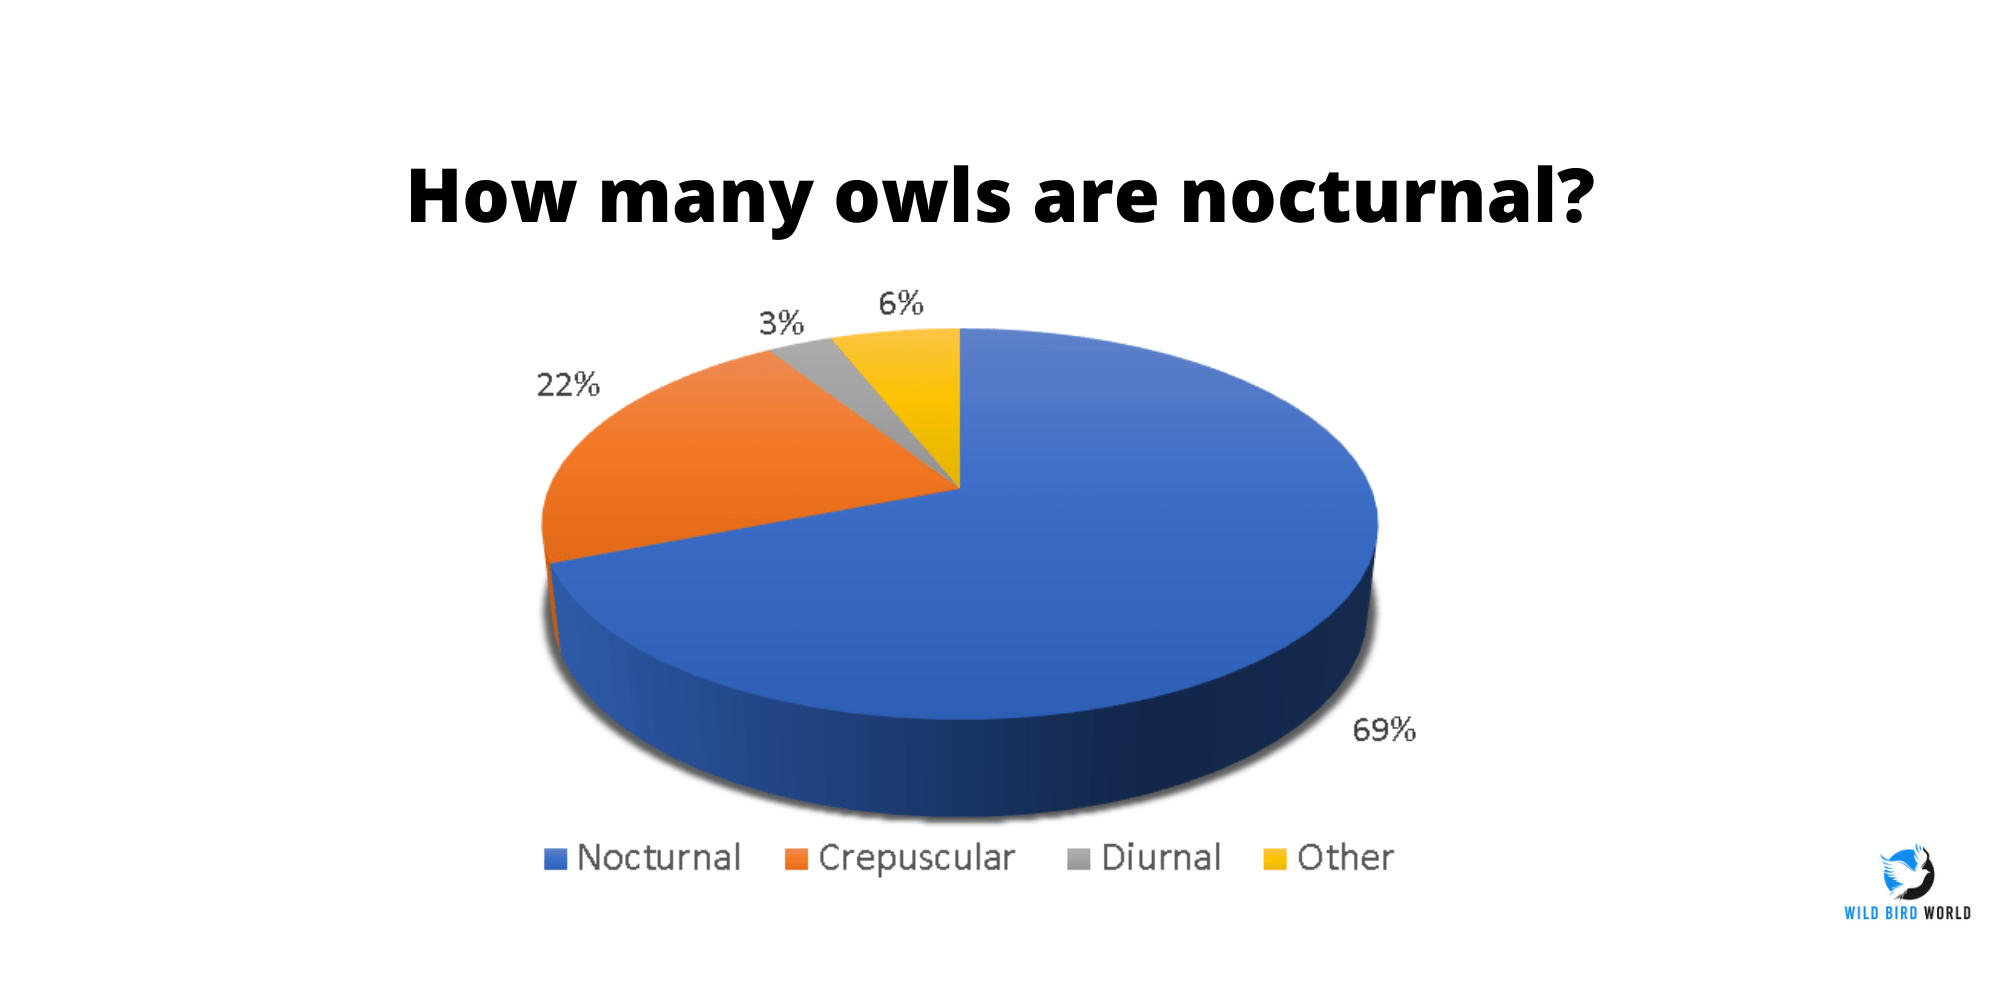 how many owls are nocturnal?